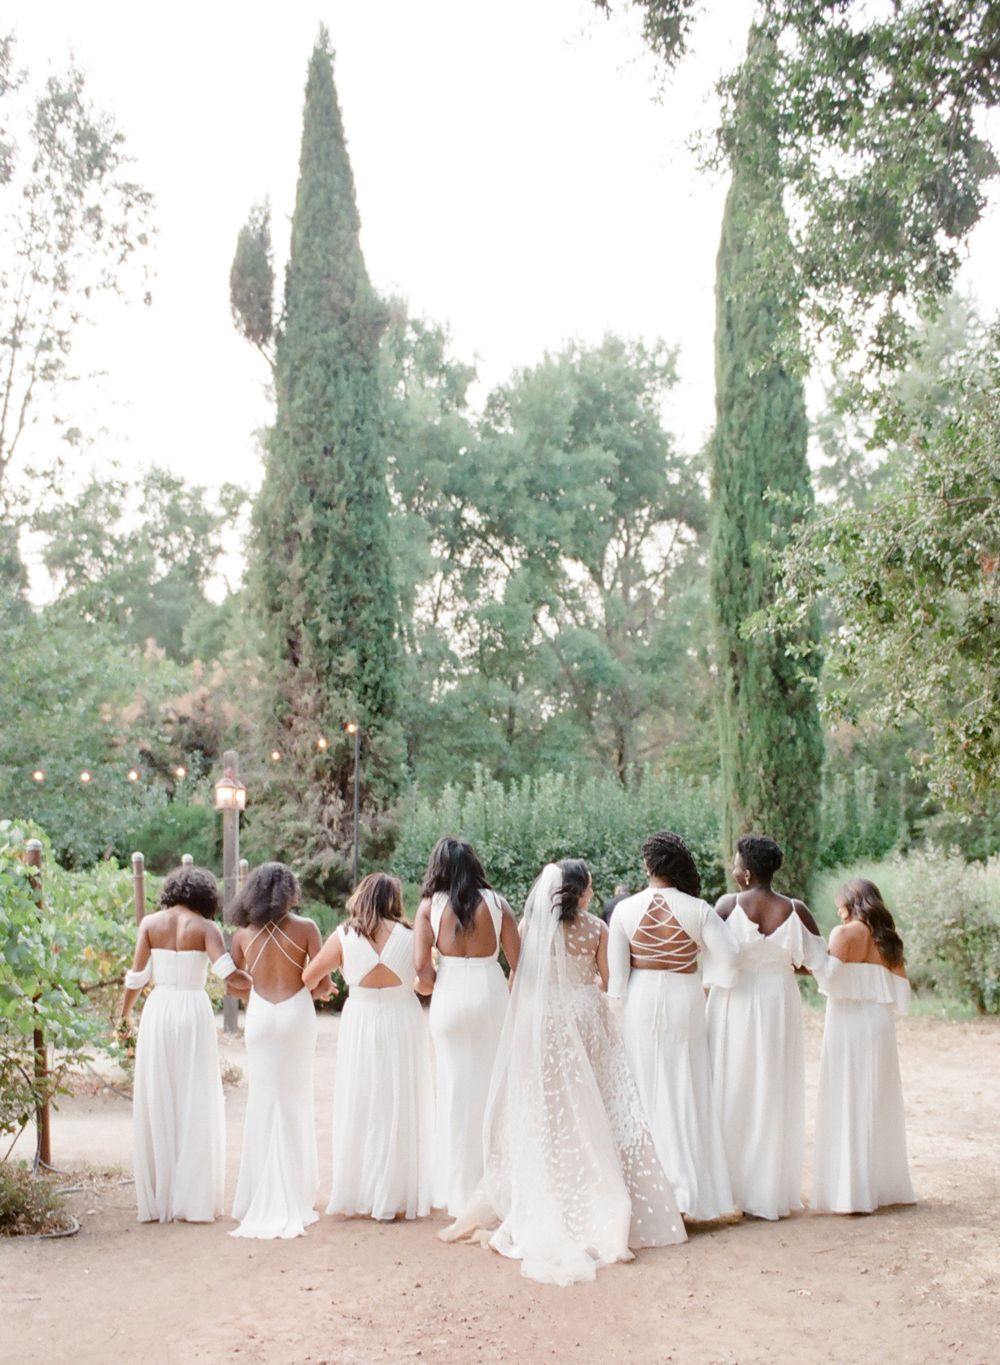 26 Chic Bridal Parties Wearing All White Dresses White